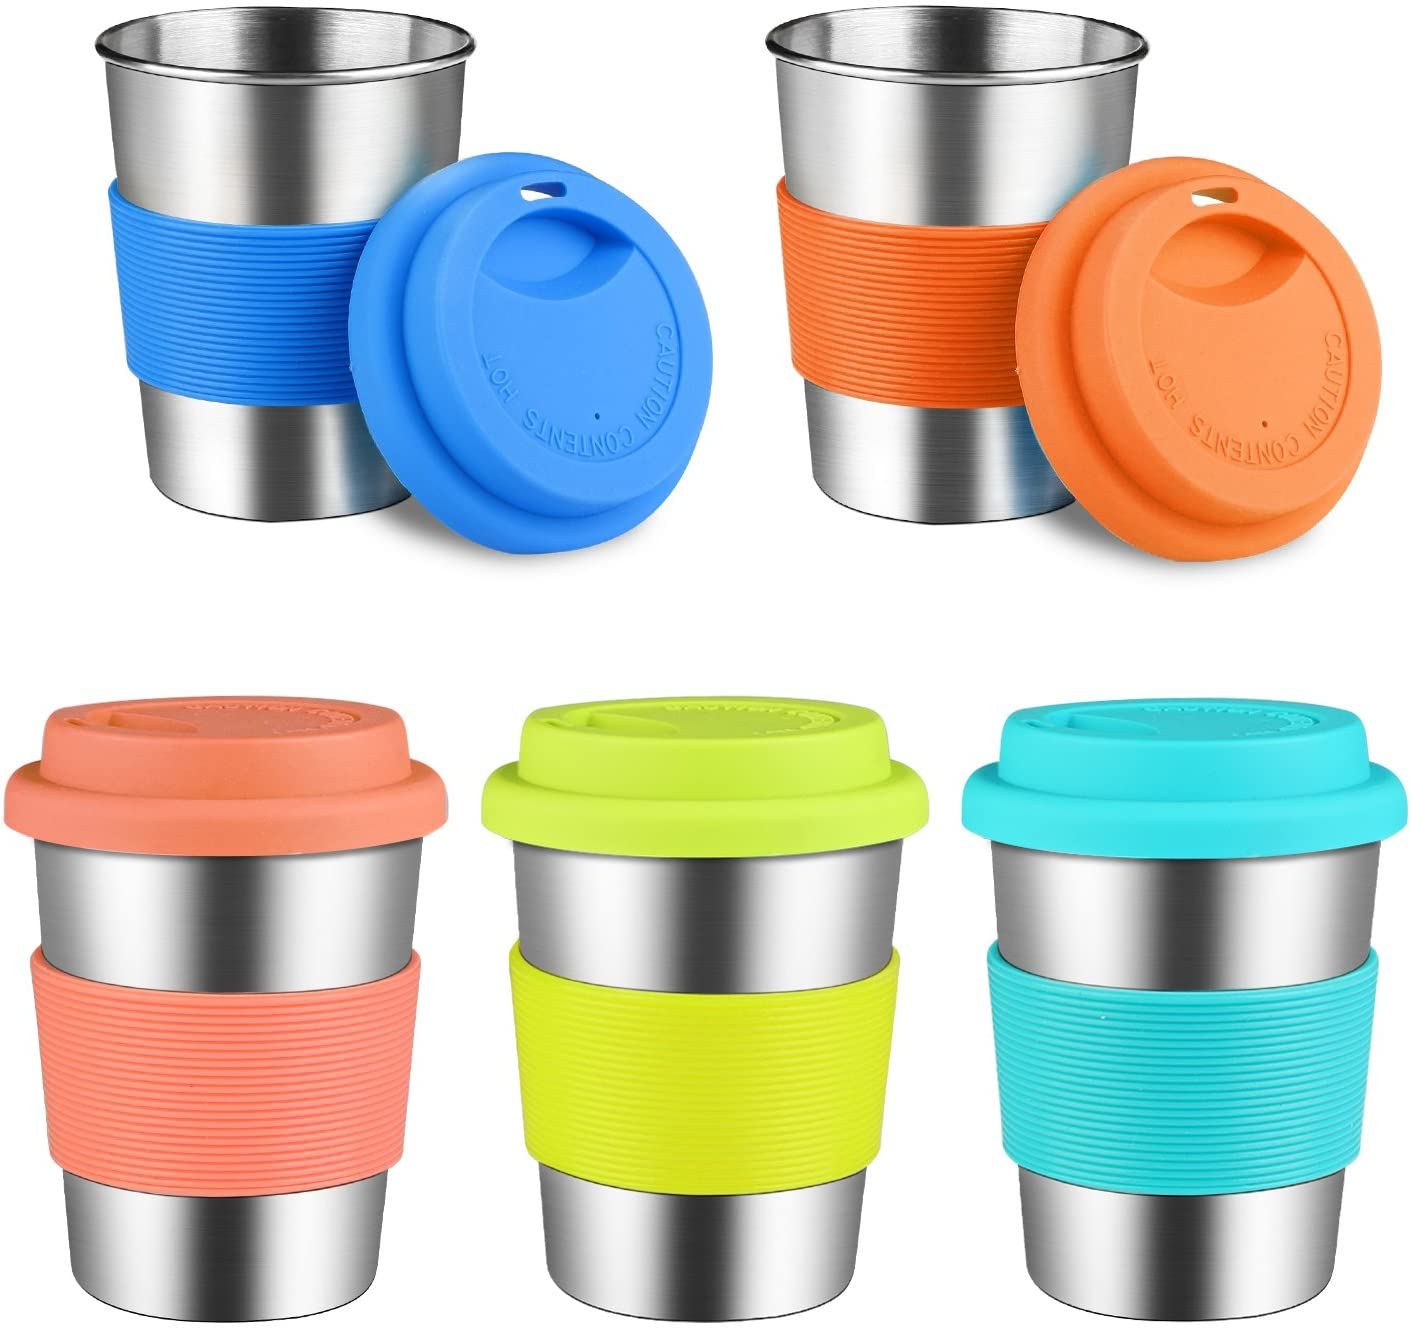 Kids Stainless Steel Cups With Silicone Lids & Sleeves, Kereda 5 Pack 8 oz. Drinking Tumblers Eco-Friendly BPA-Free for Children and Toddlers, Adults